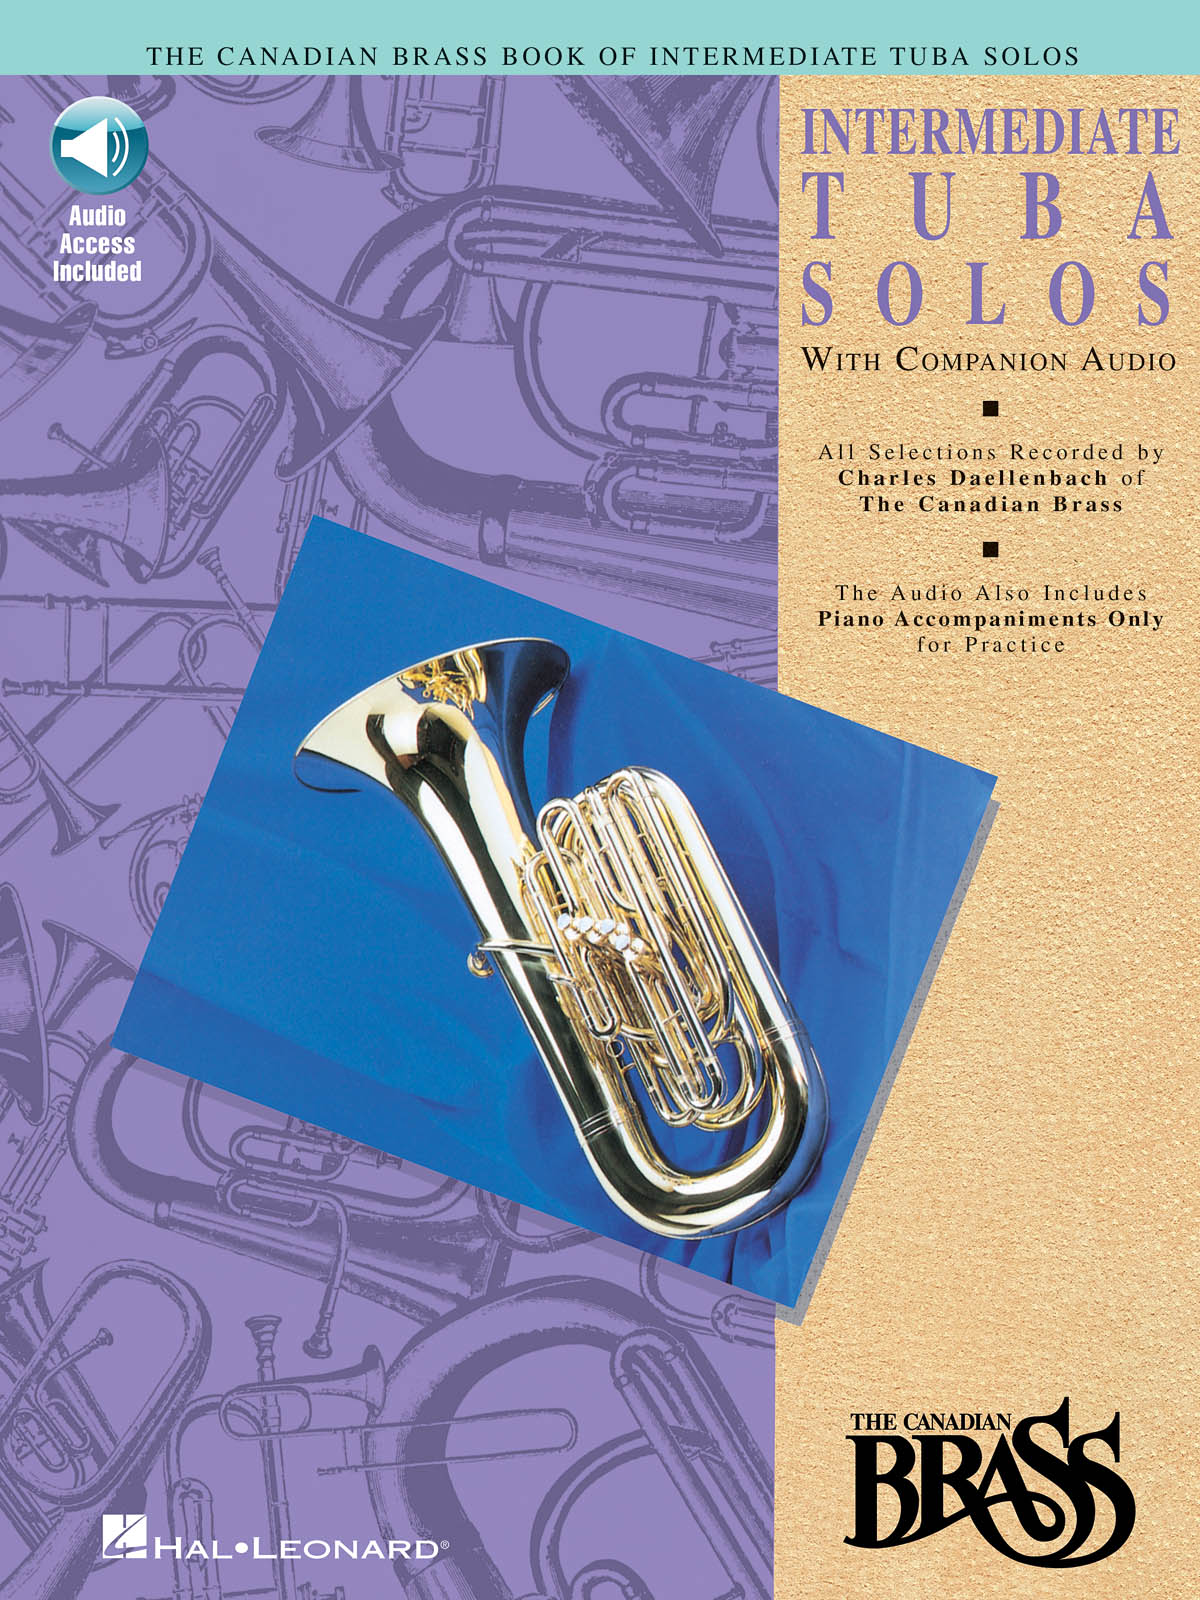 The Canadian Brass: Canadian Brass Book Of Intermediate Tuba Solos: Tuba Solo: